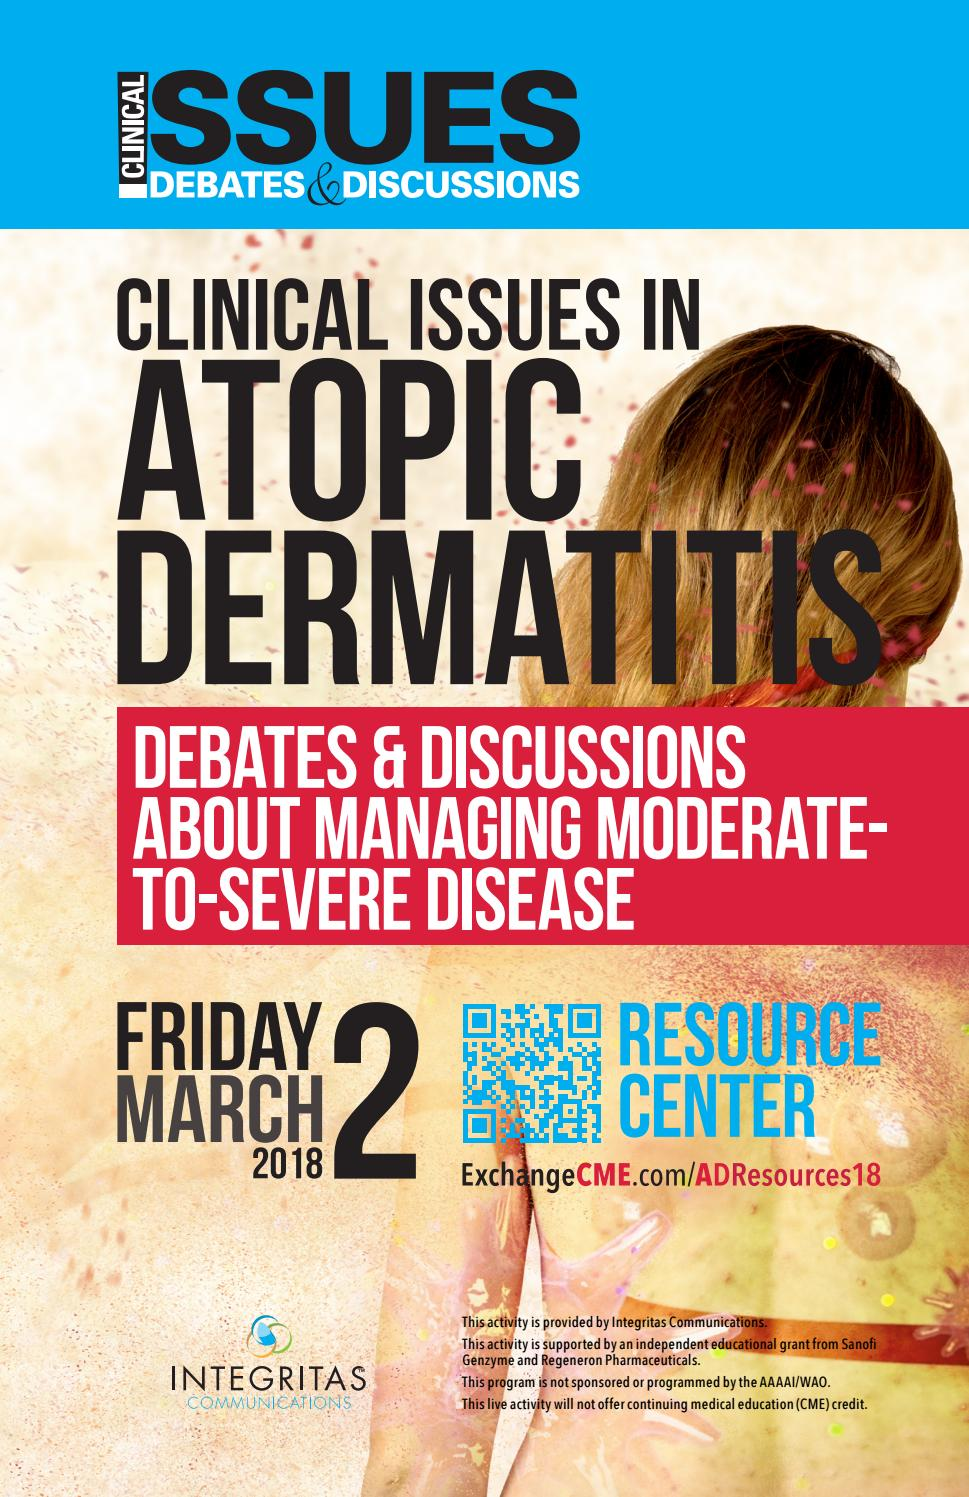 Clinical Issues in Atopic Dermatitis by Integritas